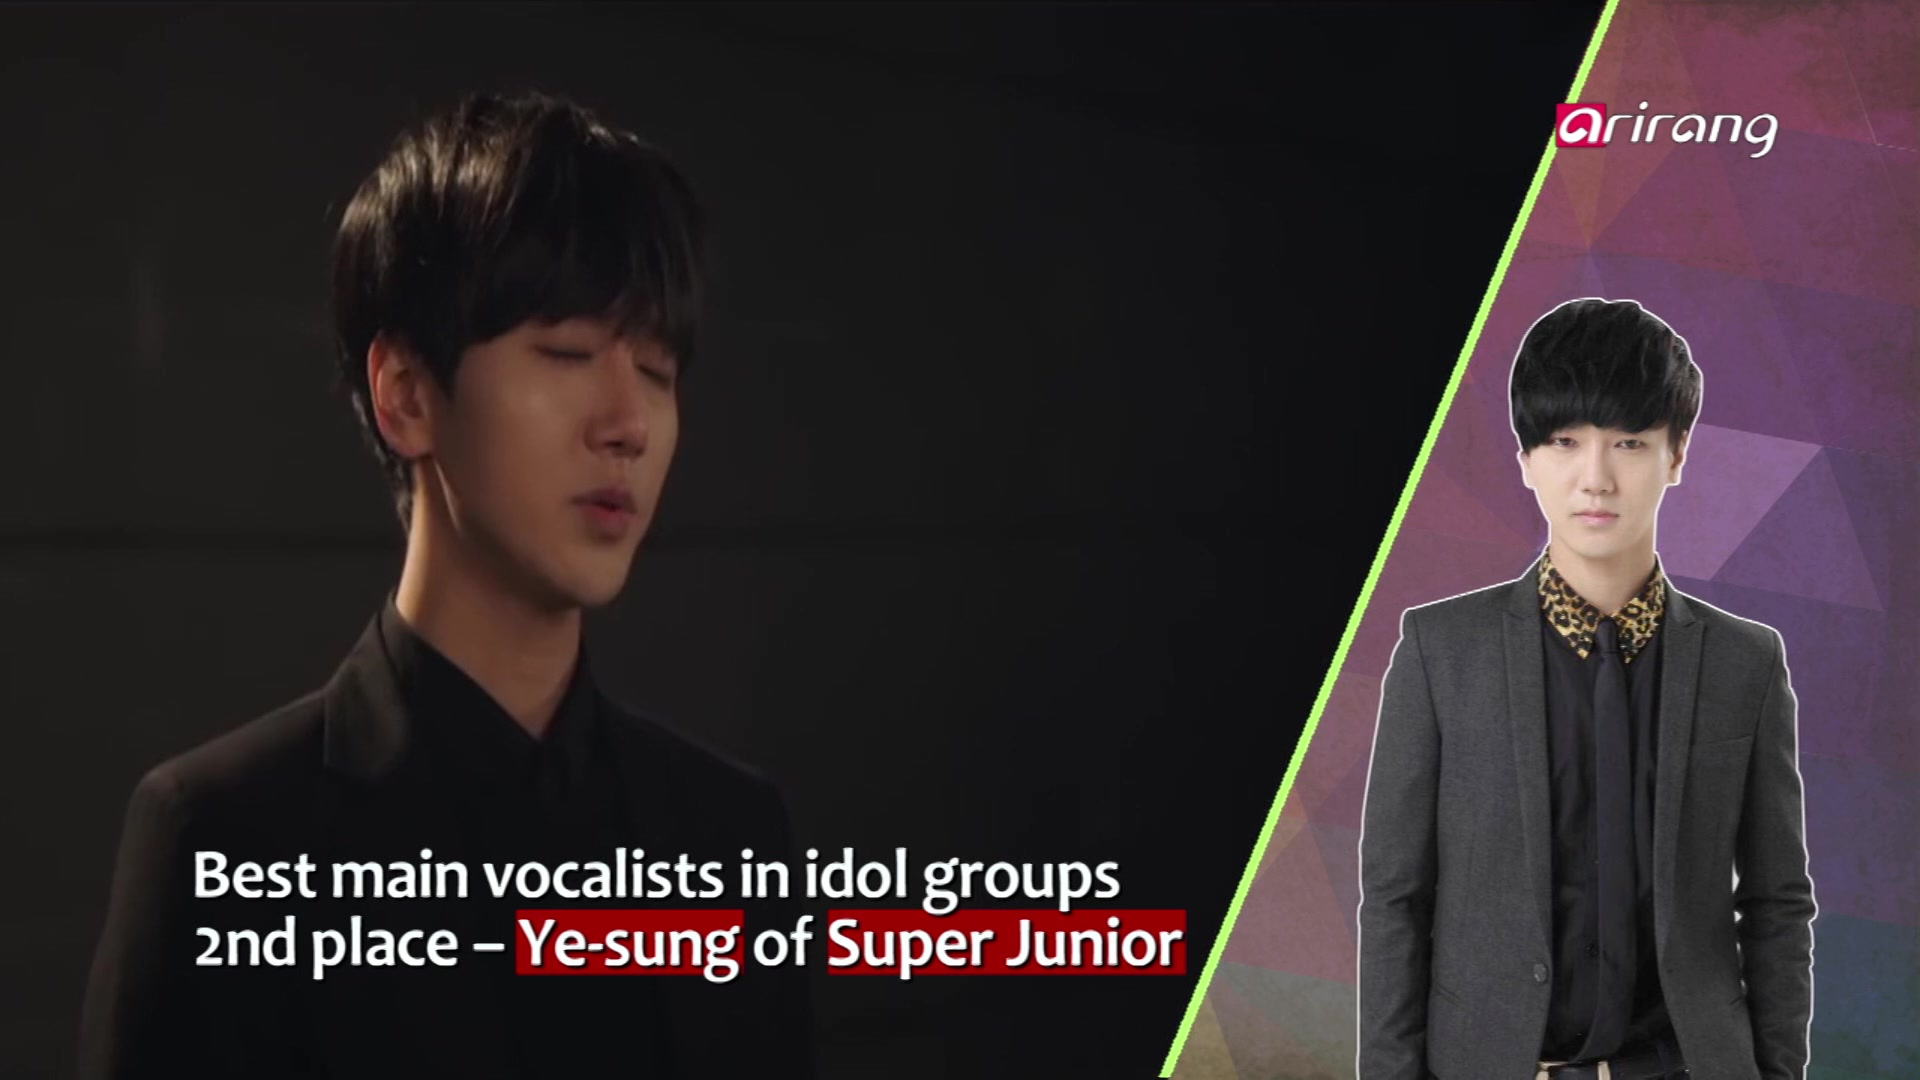 The Best Main Vocalists in Idol Groups